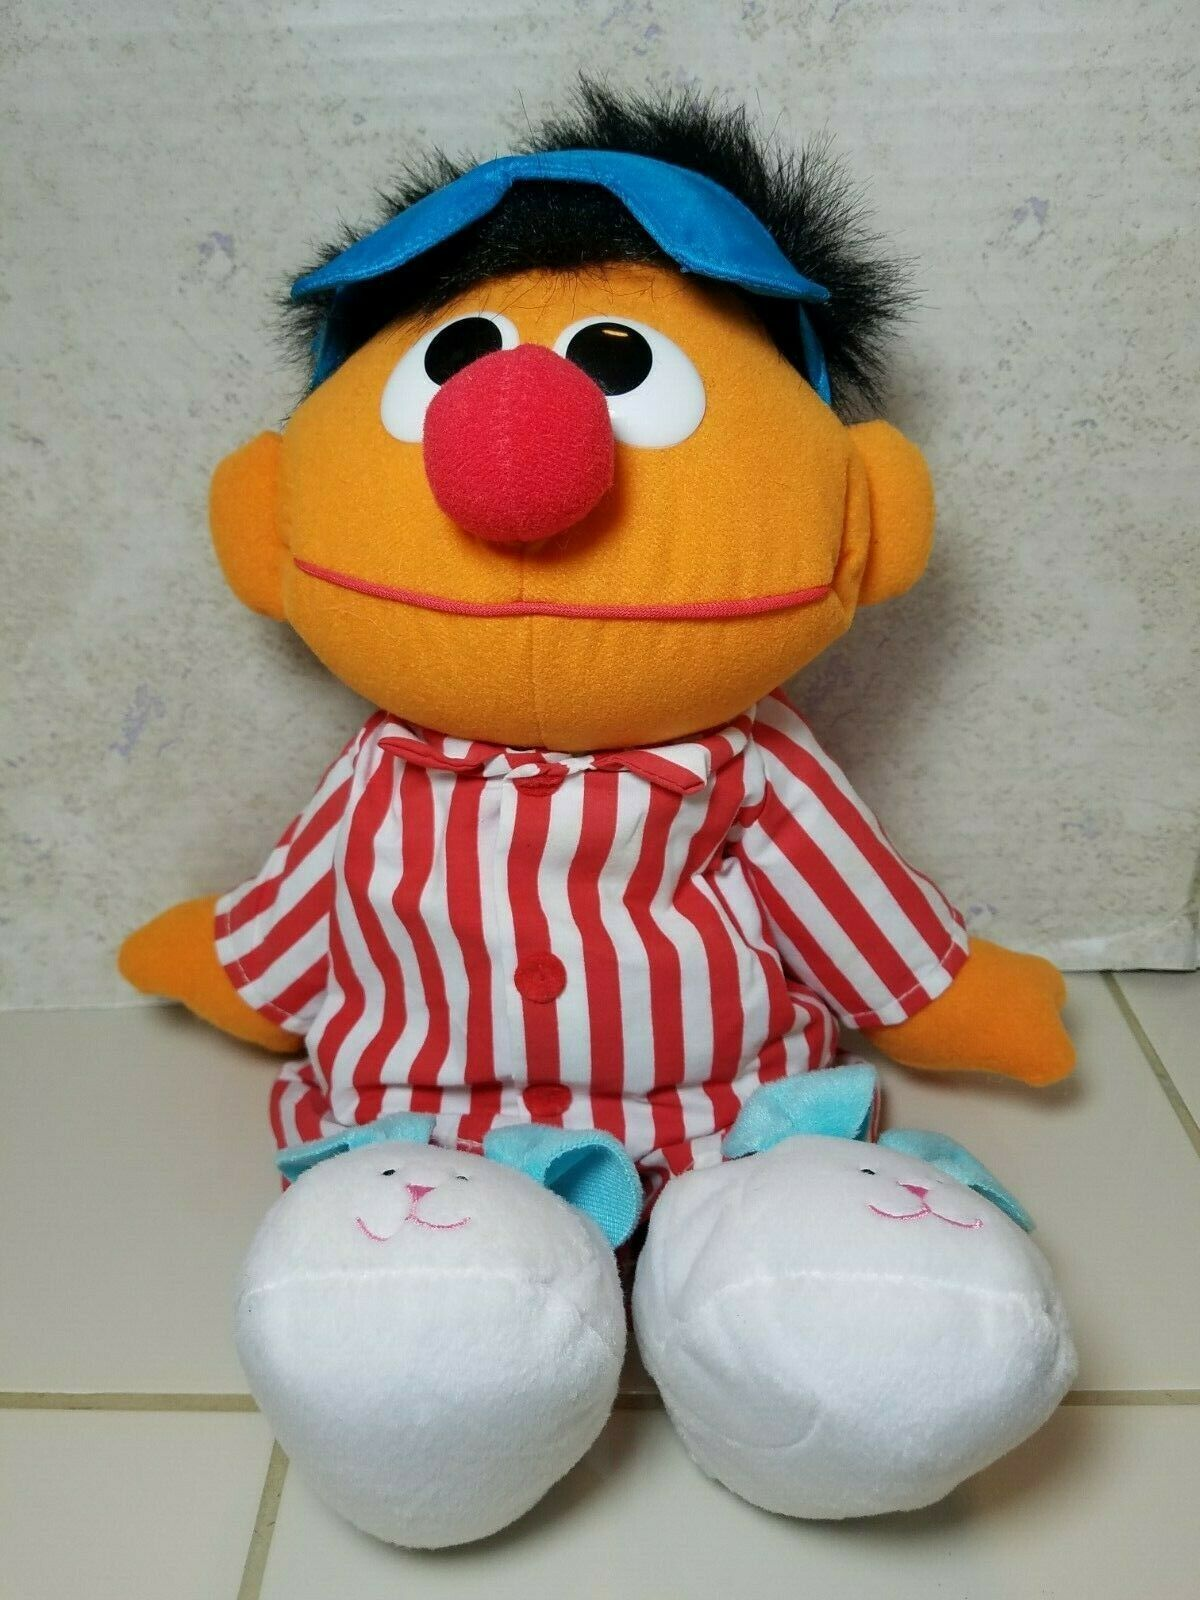 "TYCO Sesame Street Sleep And Snore Ernie 1996 Plush Doll 18"" Jim Henson Muppet image 1"